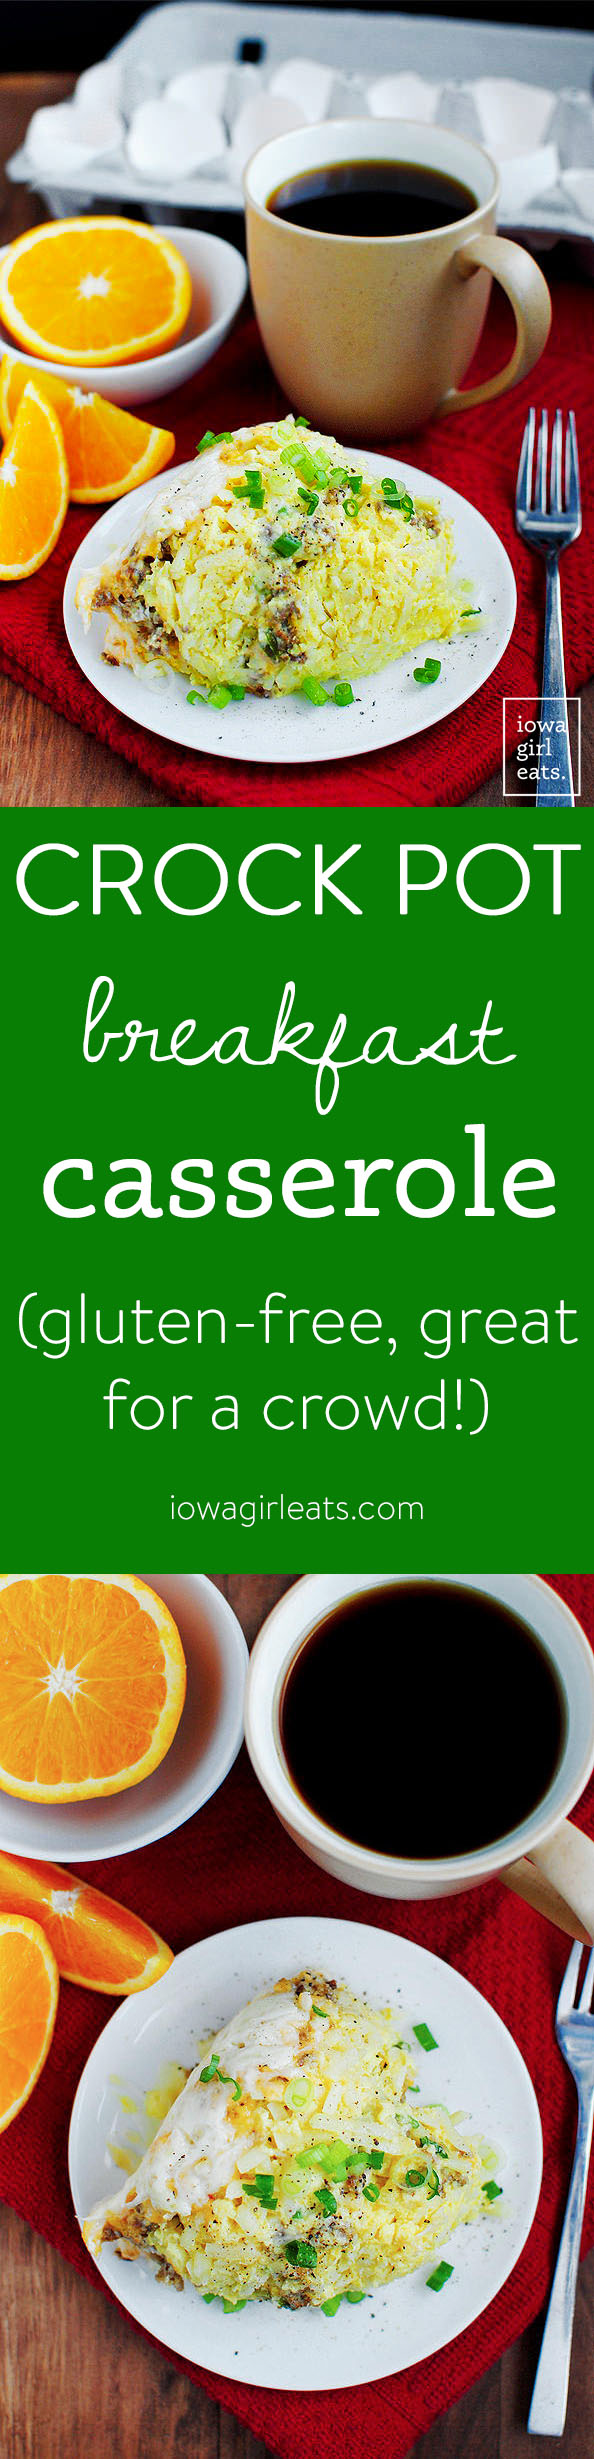 Crock Pot Breakfast Casserole is the perfect gluten-free breakfast for feeding a hungry crowd. Hearty and so delicious! | iowagirleats.com